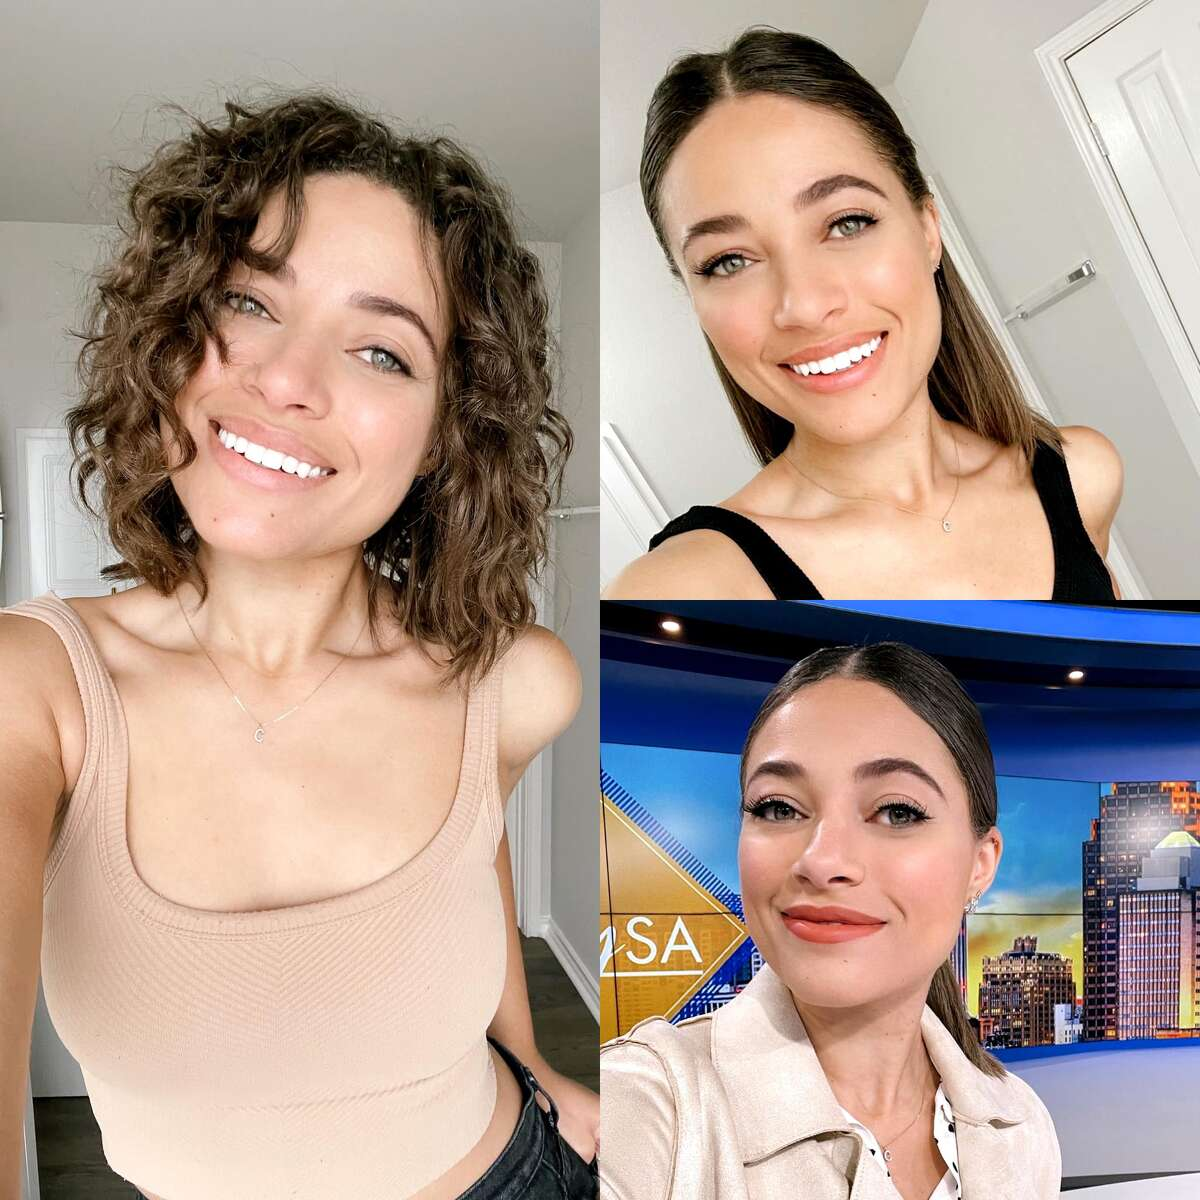 Clarke Finney shares photo of her different hair styles.